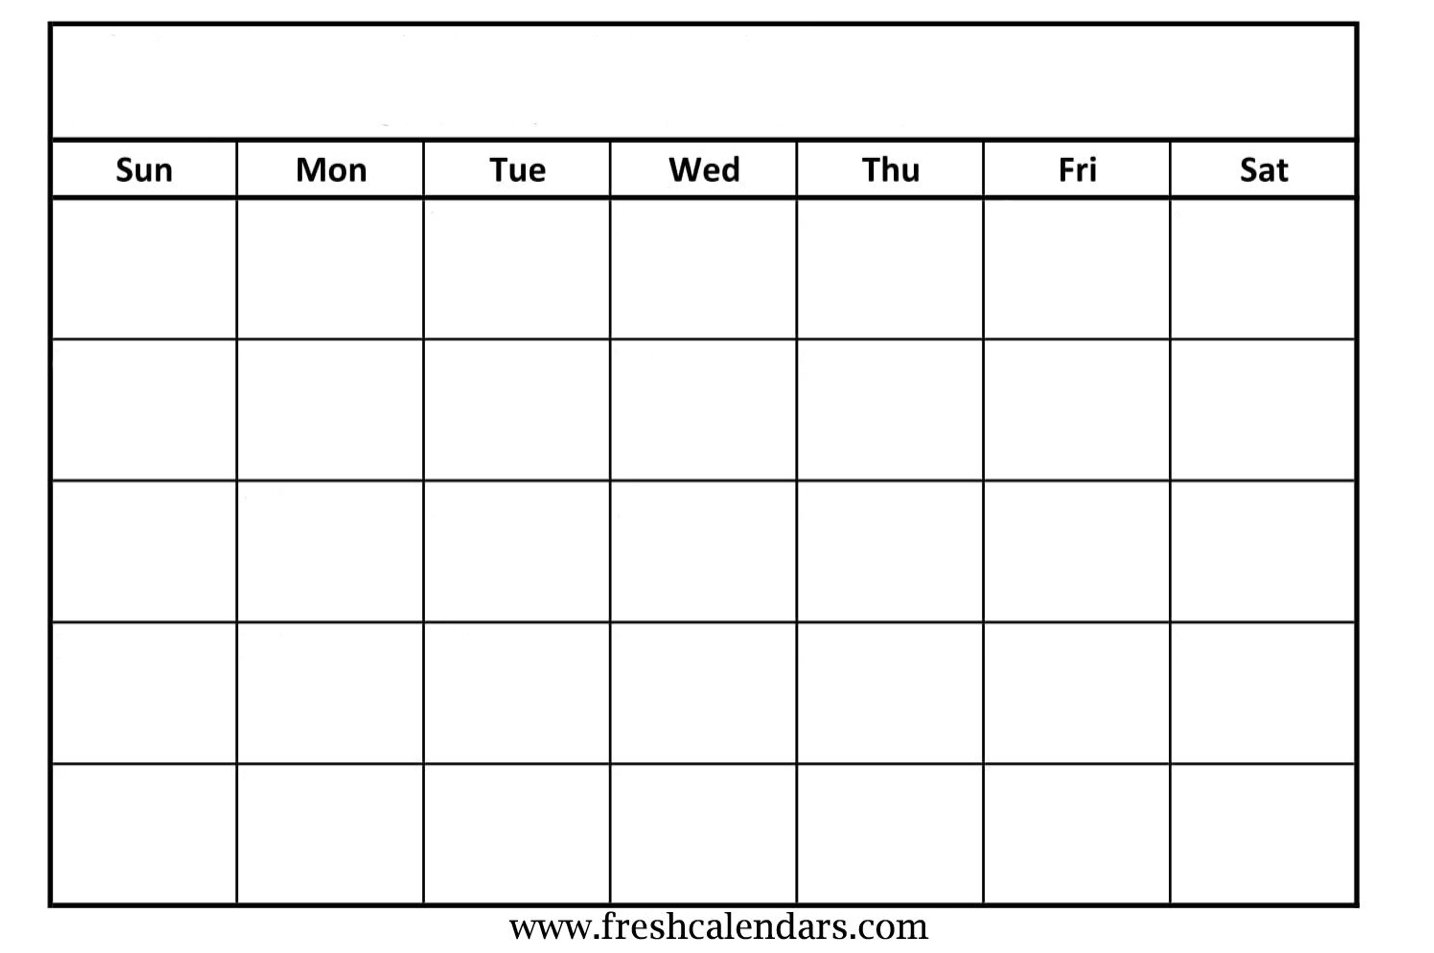 Fill Out Calendar | Calendar Template 2020 Calendars To Fill In And Print For Free